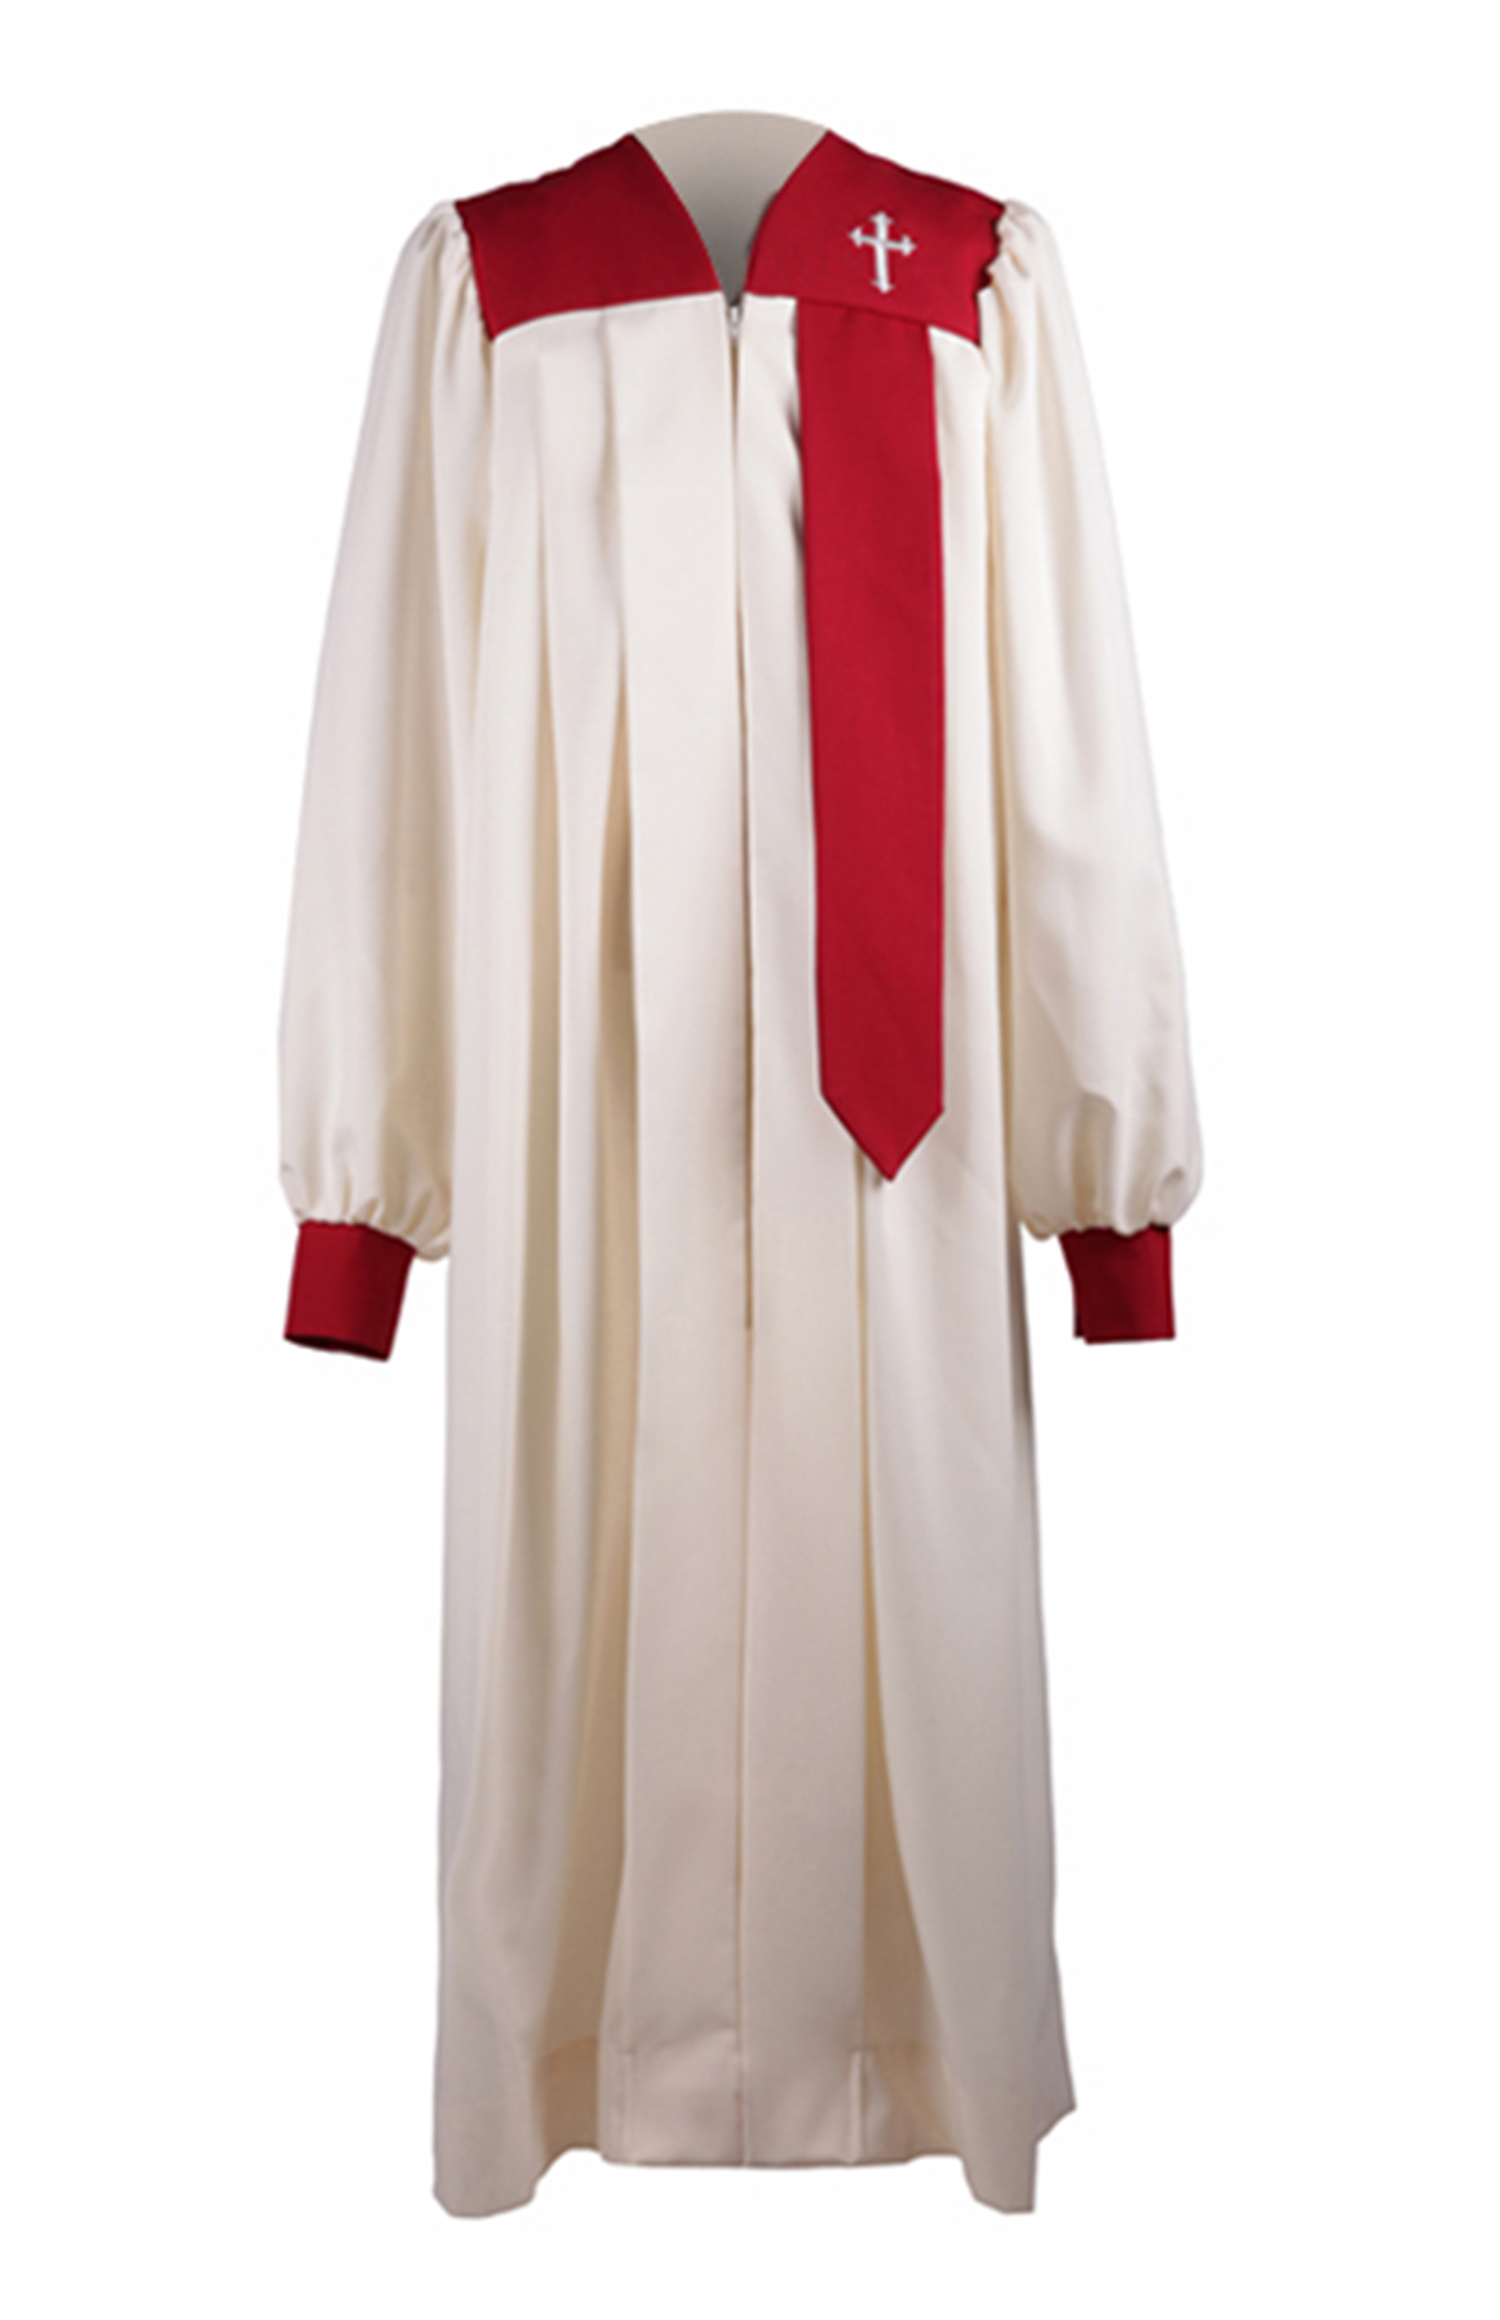 New - Deluxe Choir Robes - Made to Order - Graduation Gowns in ...